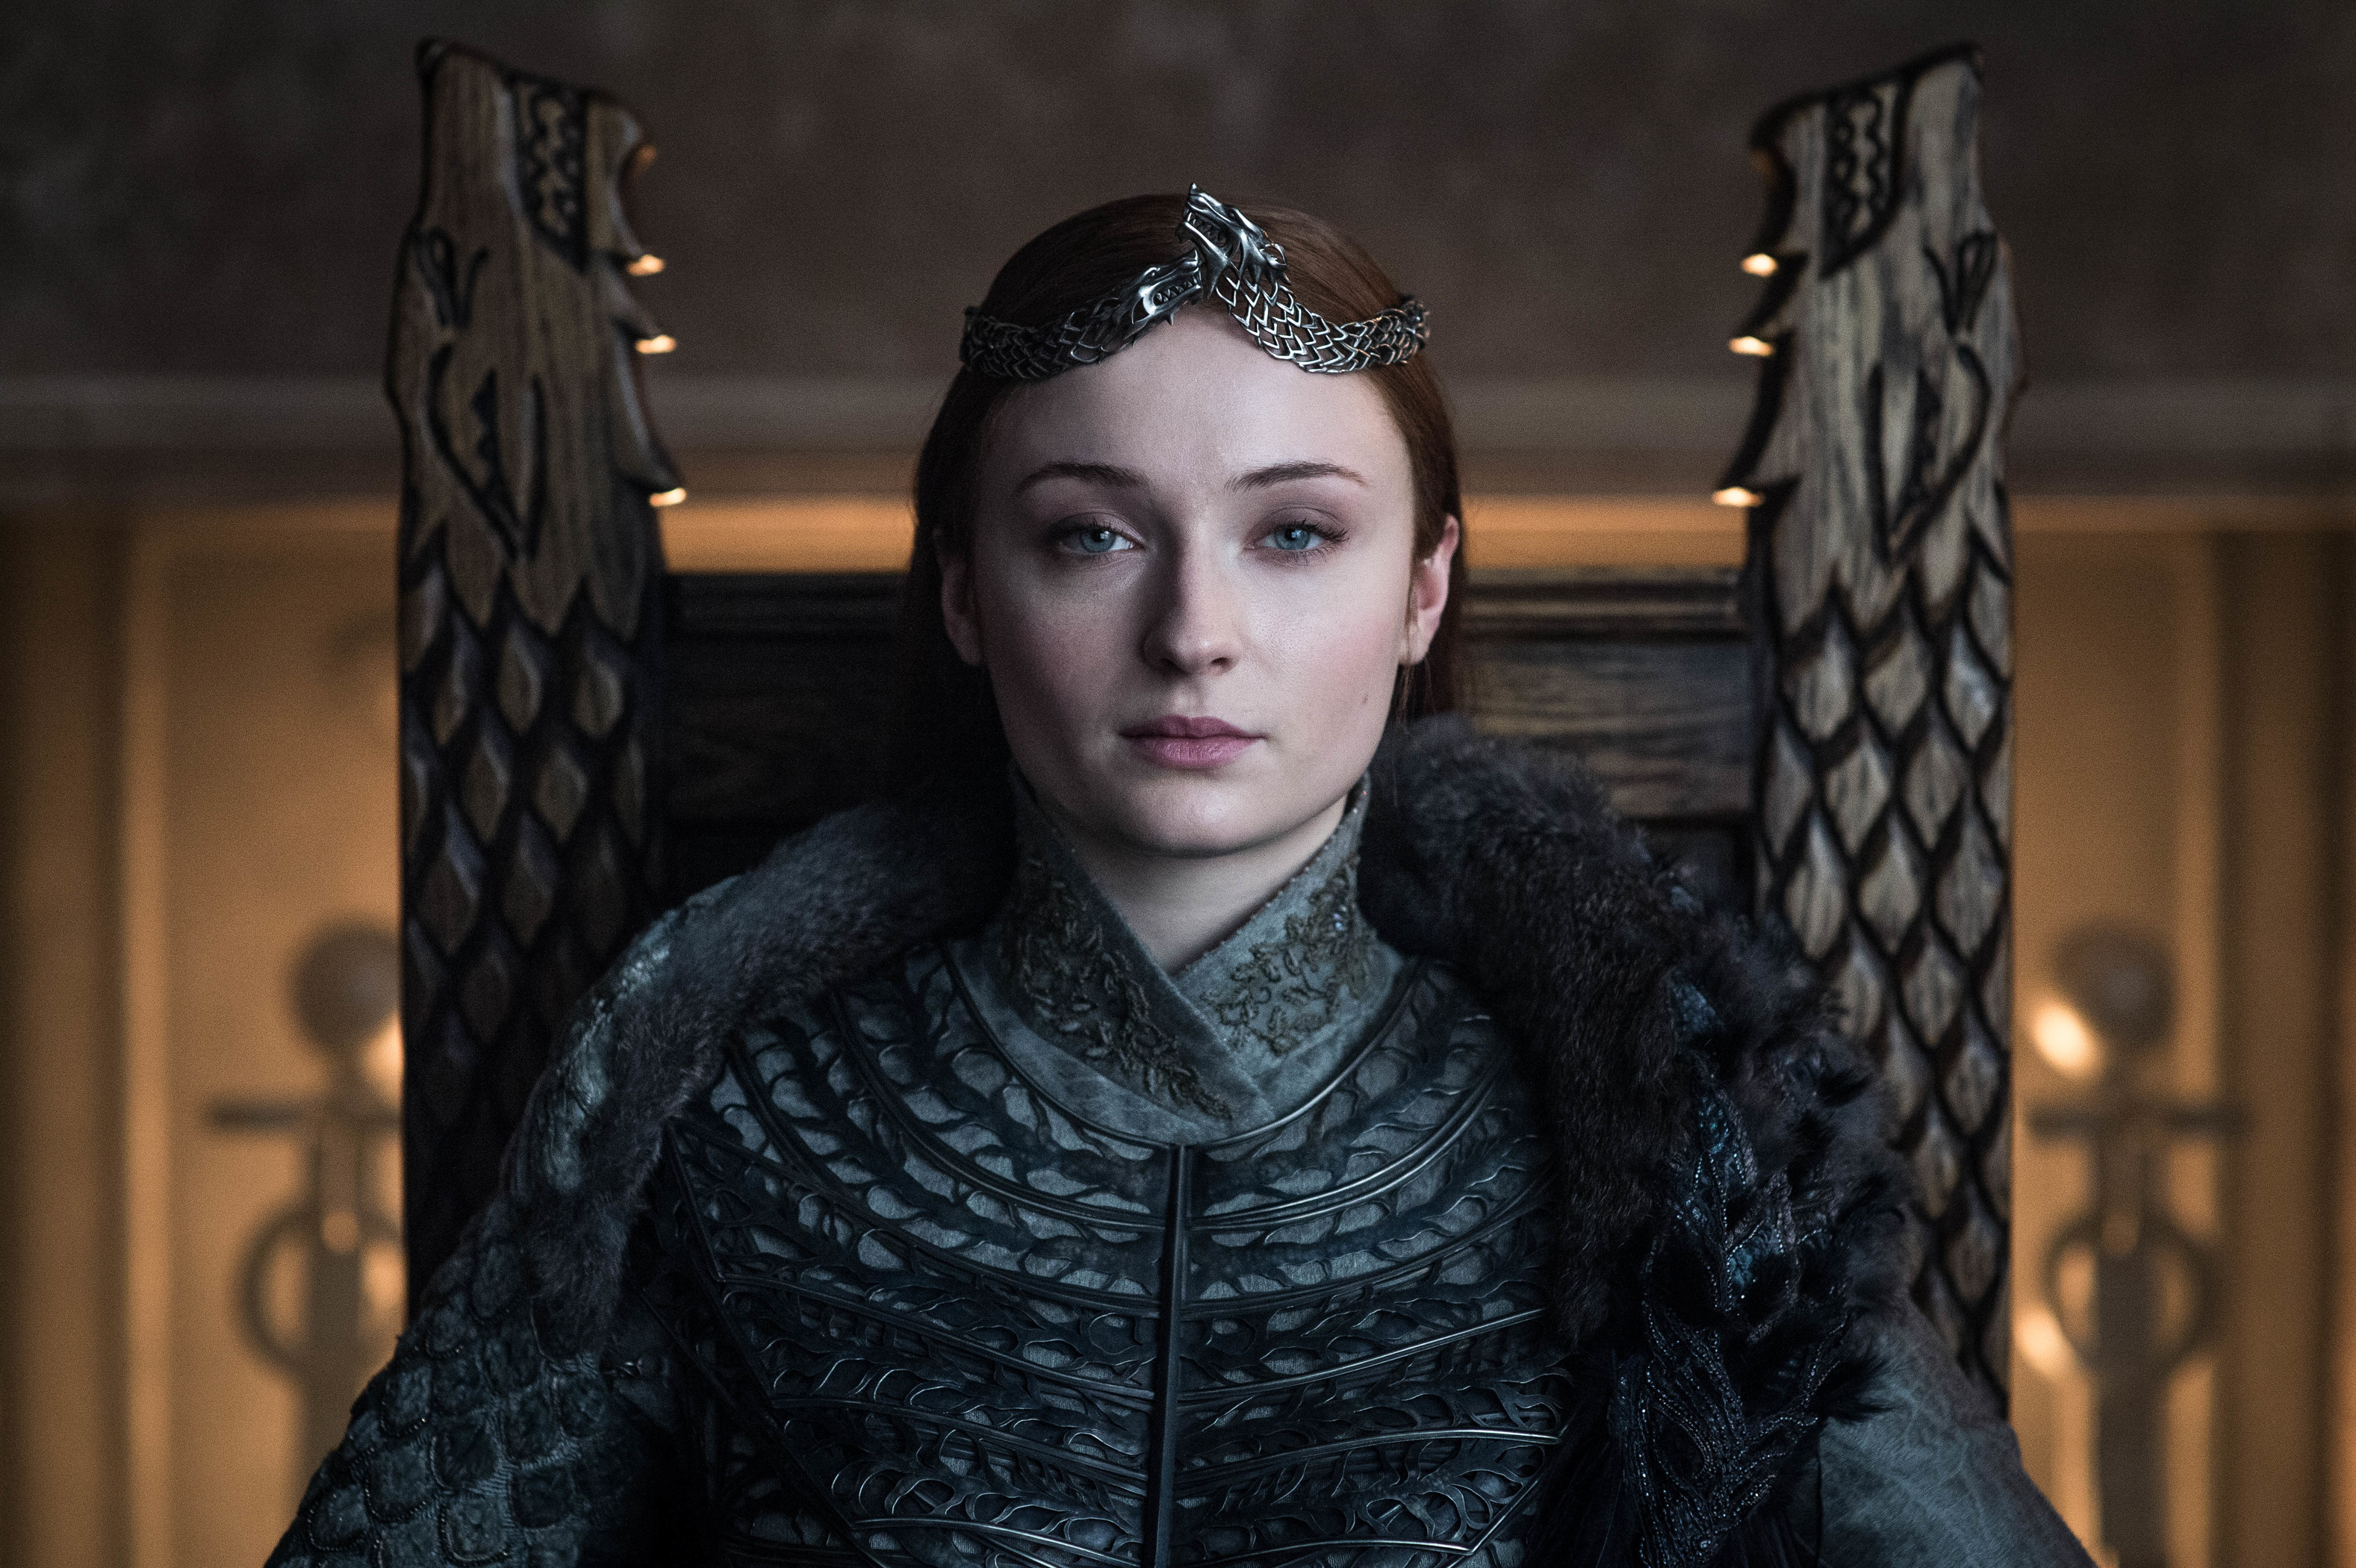 e525122c2f36f What Sansa Stark s coronation hairstyle says about her character development